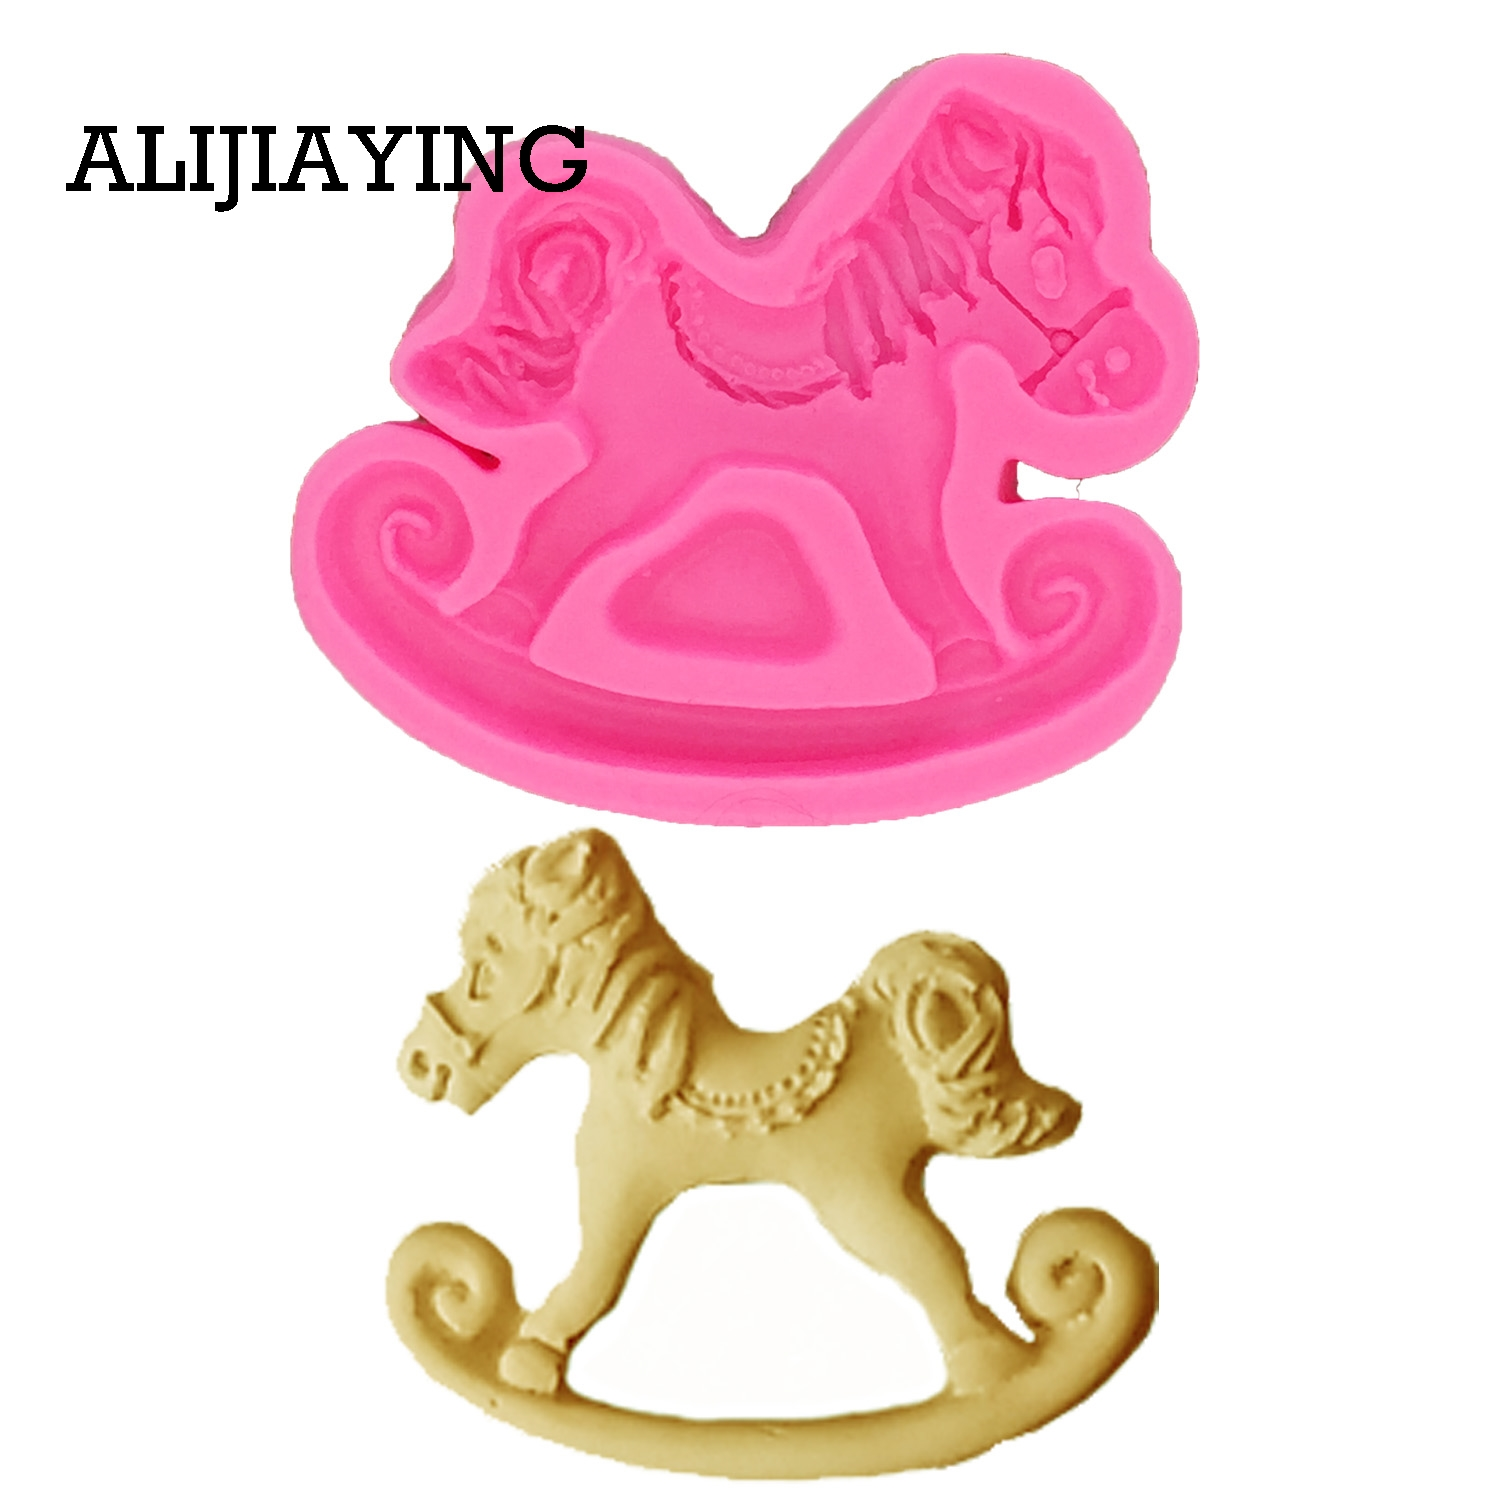 M0731 1Pcs Trojan Horse Modelling For The Baby Shower Favour Gifts Silicone Mold Cake Decorating Tools Fondant Chocolate Moulds